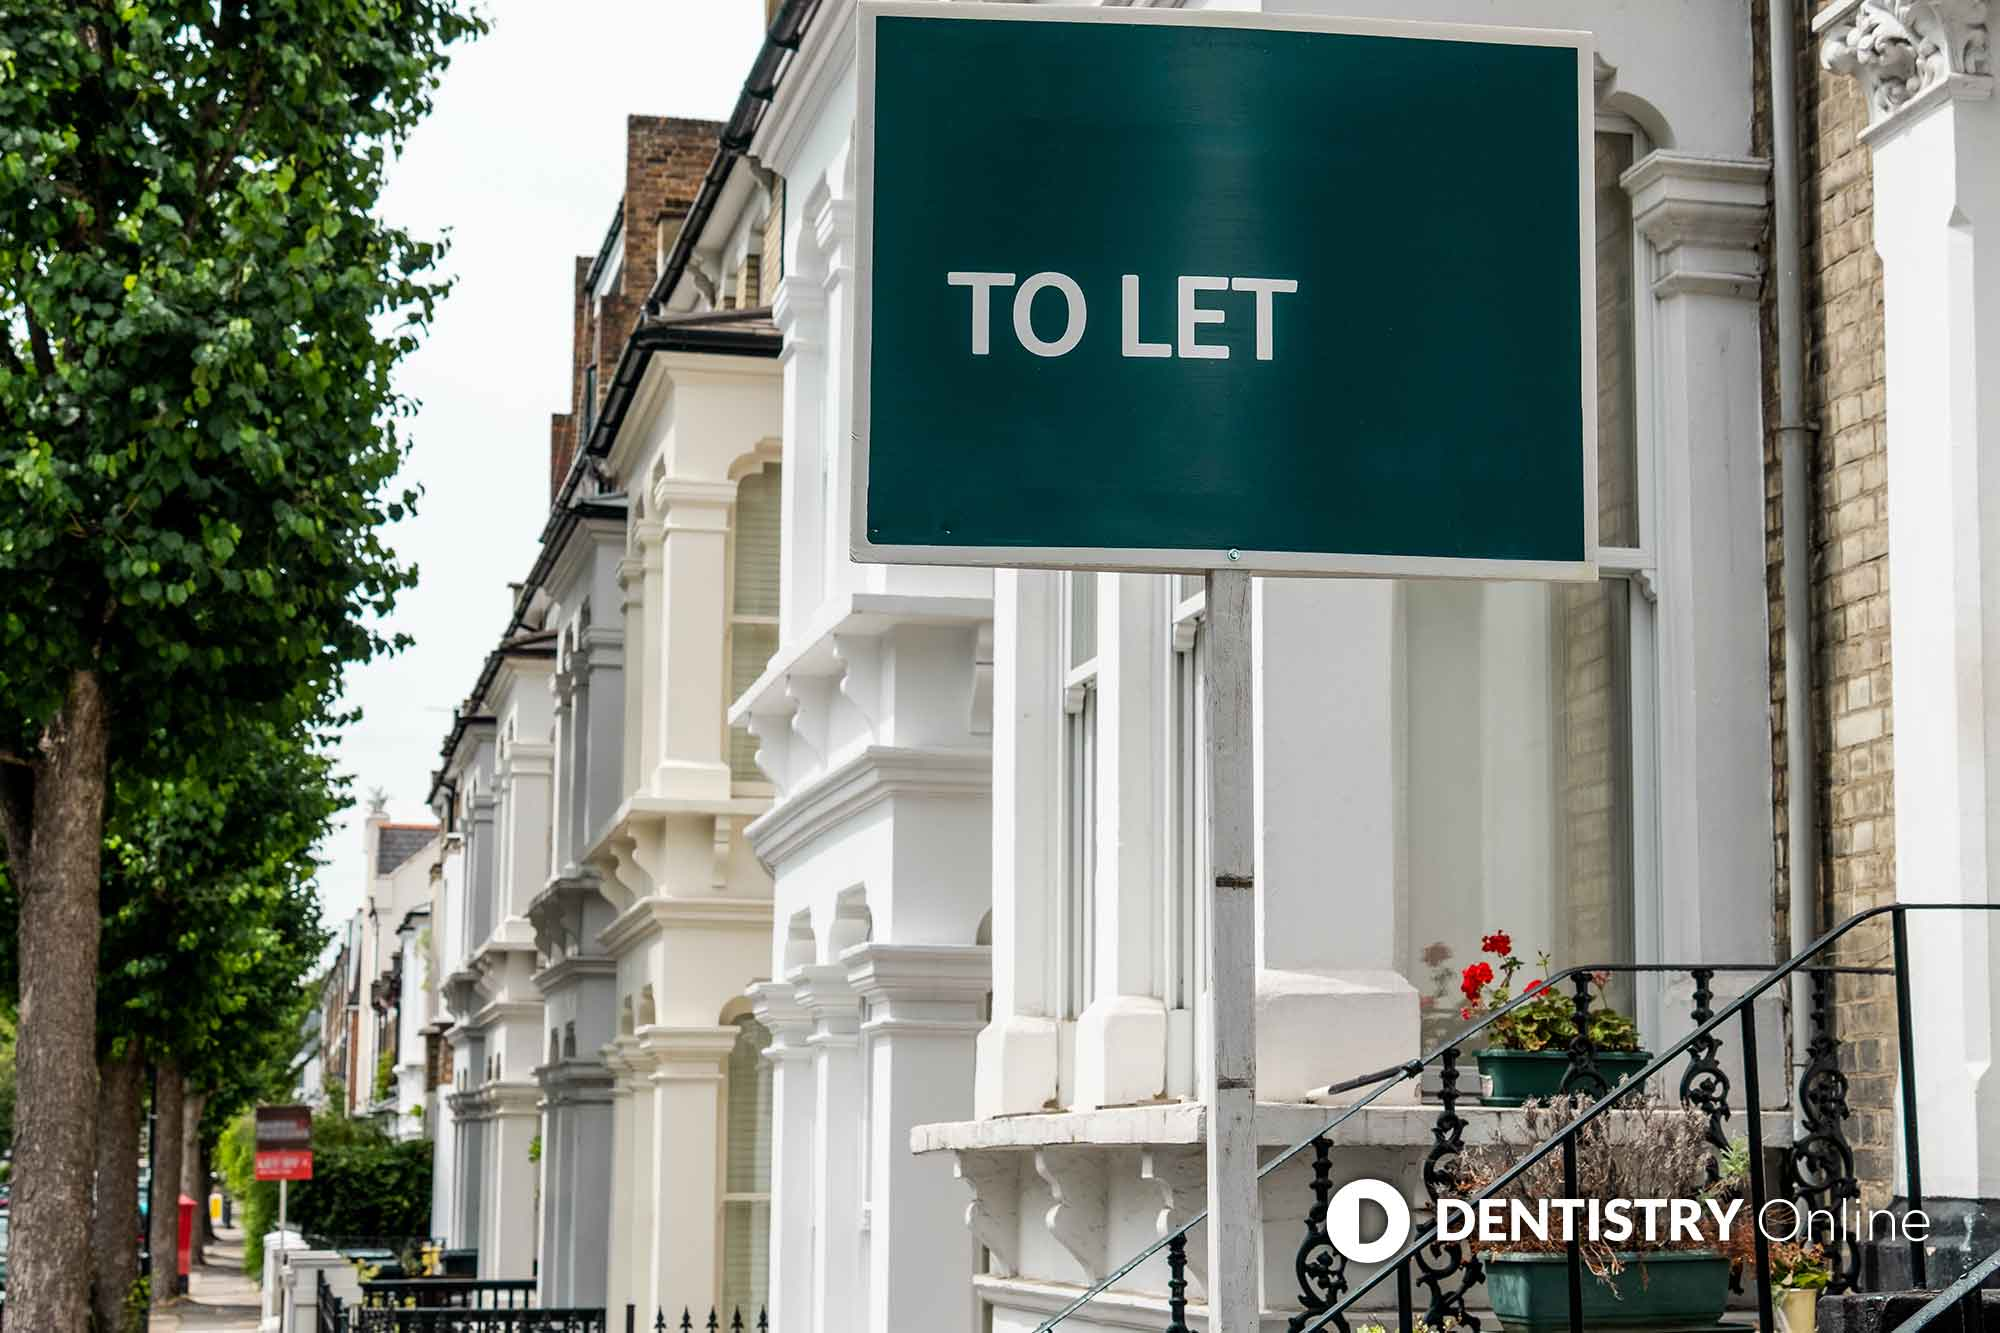 tenants to let sign